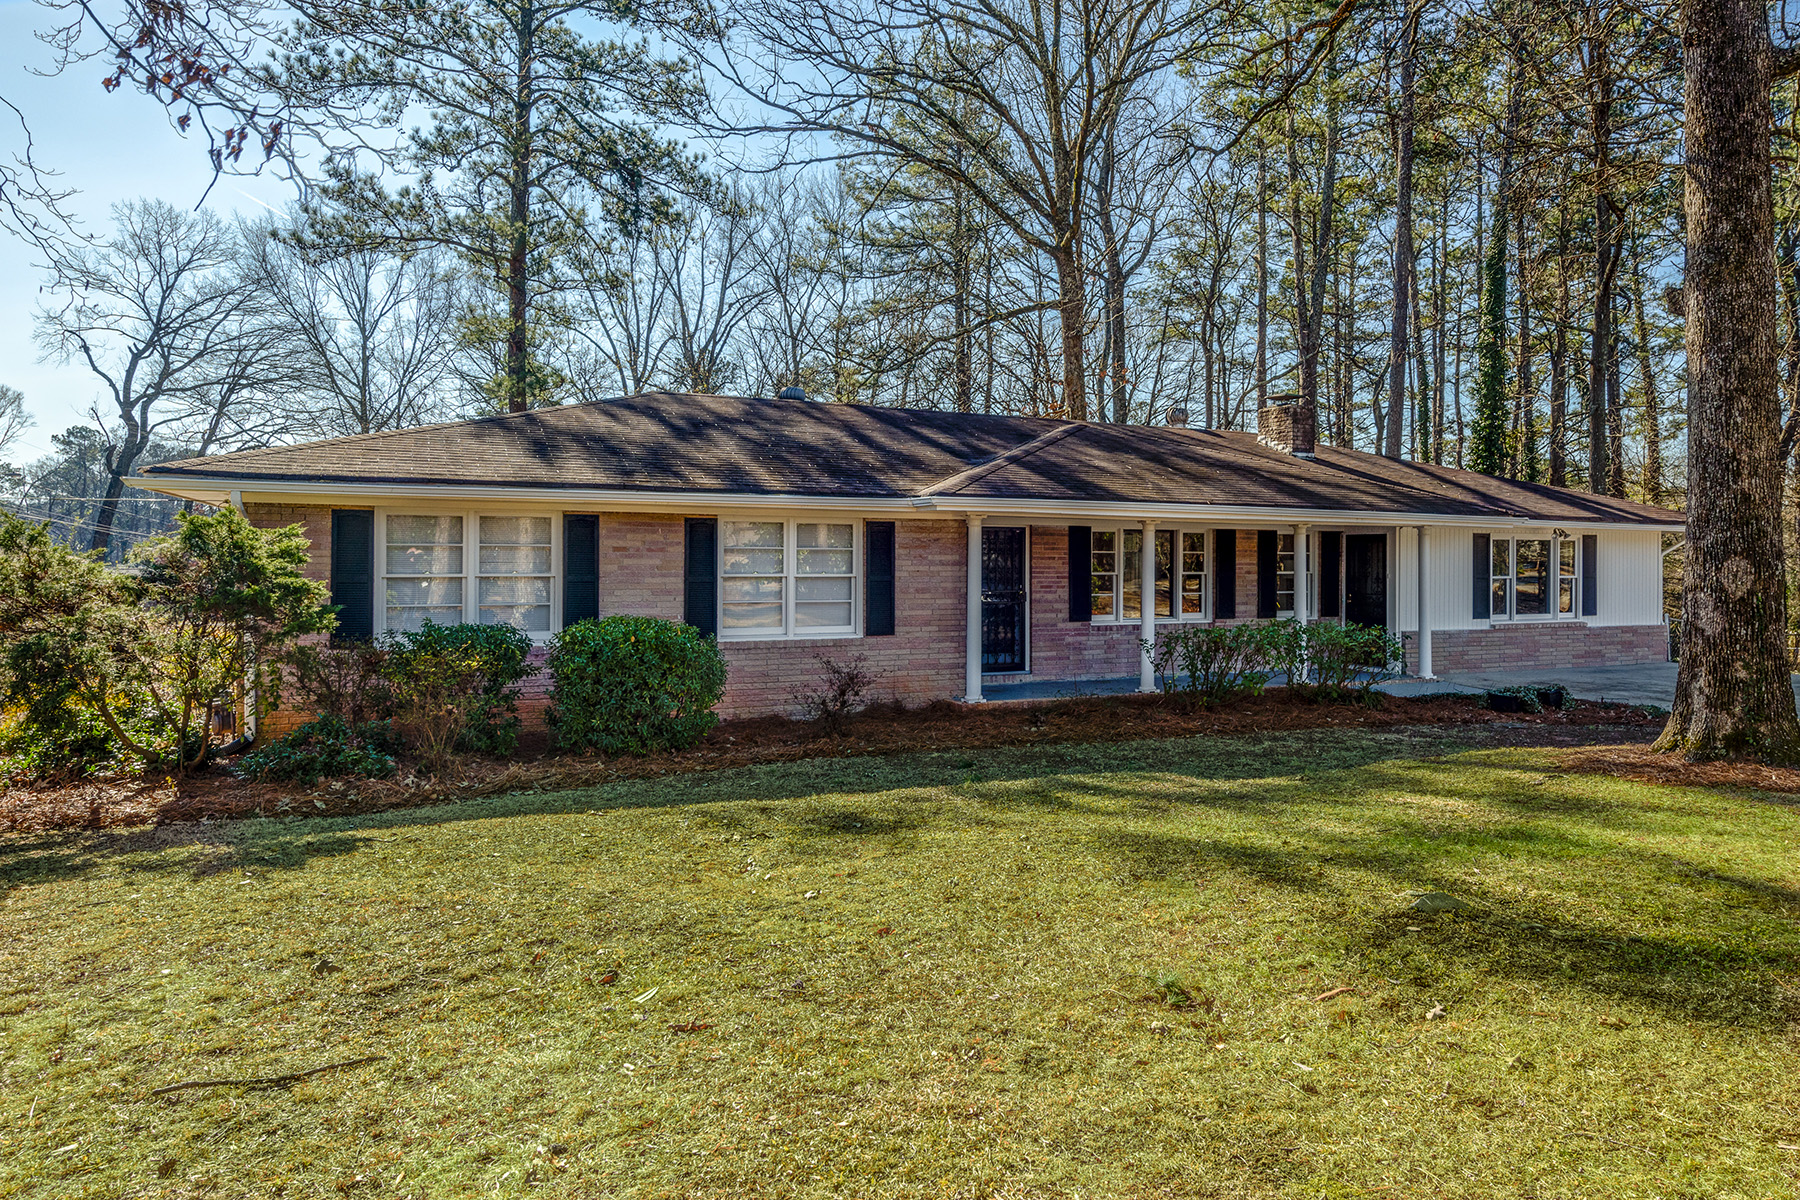 Single Family Home for Sale at Lovely Spacious Renovated Ranch In Charming West Cobb Neighborhood 639 Concord Road Smyrna, Georgia 30082 United States